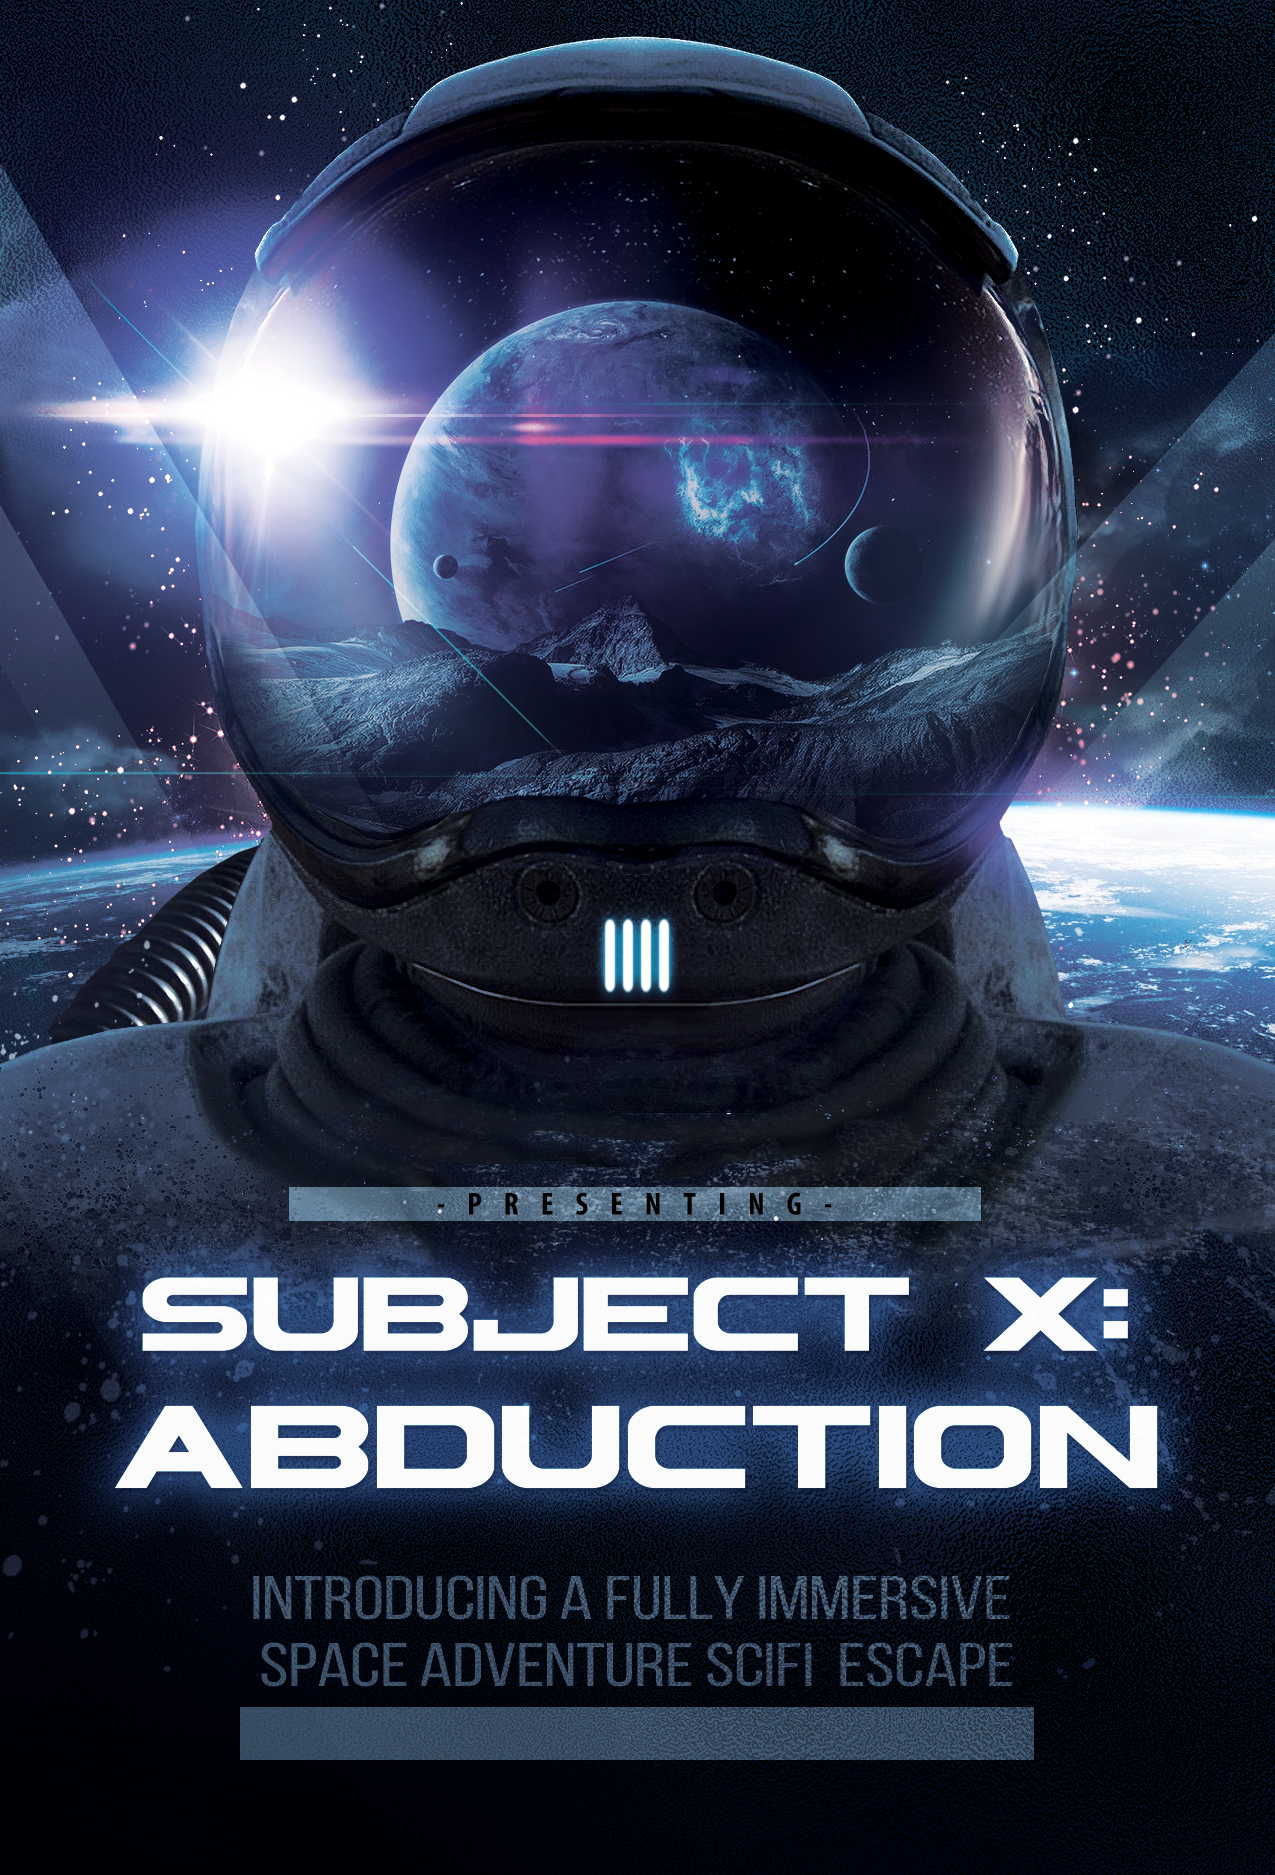 SUBJECTXABDUCTION FLYER GENERIC.png